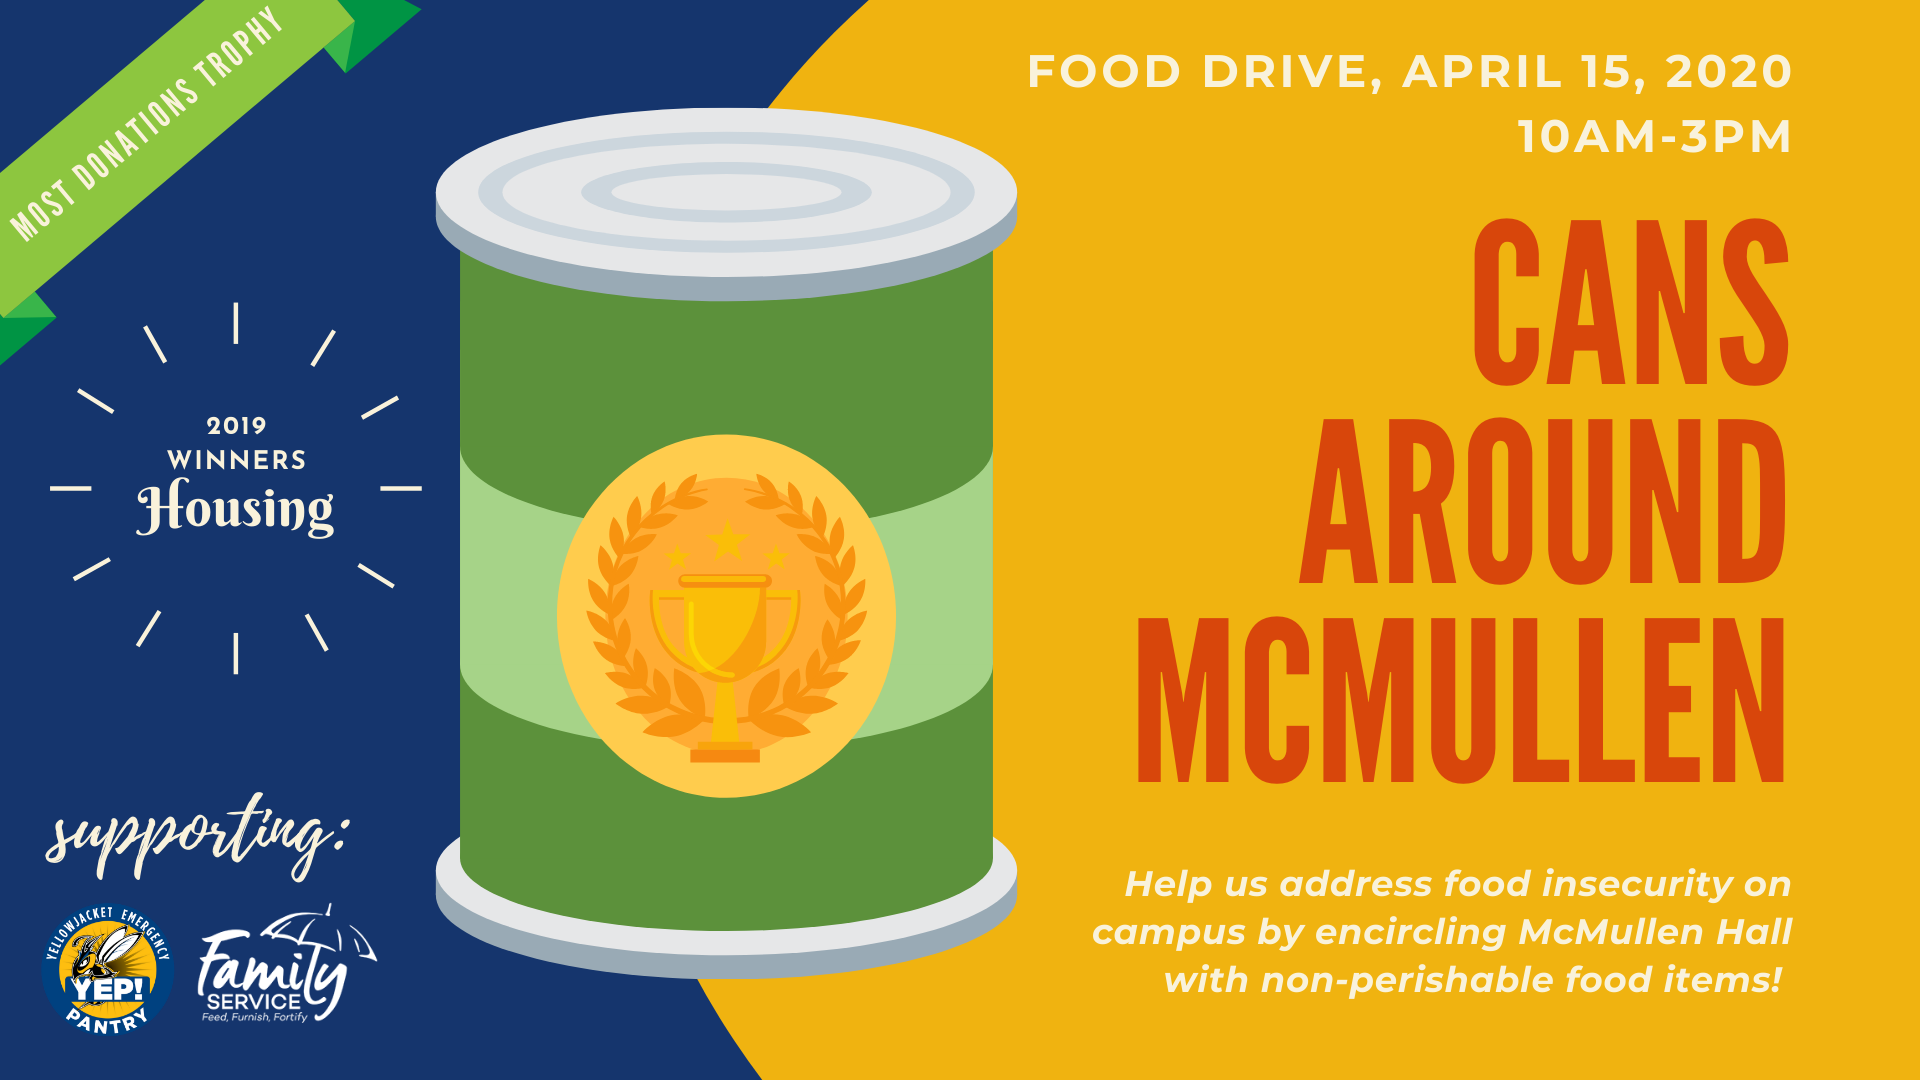 CANS AROUND MCMULLEN FOOD DRIVE APRIL 15 2020 10AM-3PM HELP US ADDRESS FOOD INSECURITY ON CAMPUS BY ENCIRCLING MCMULLEN HALL WITH NON-PERISHABLE FOOD ITEMS